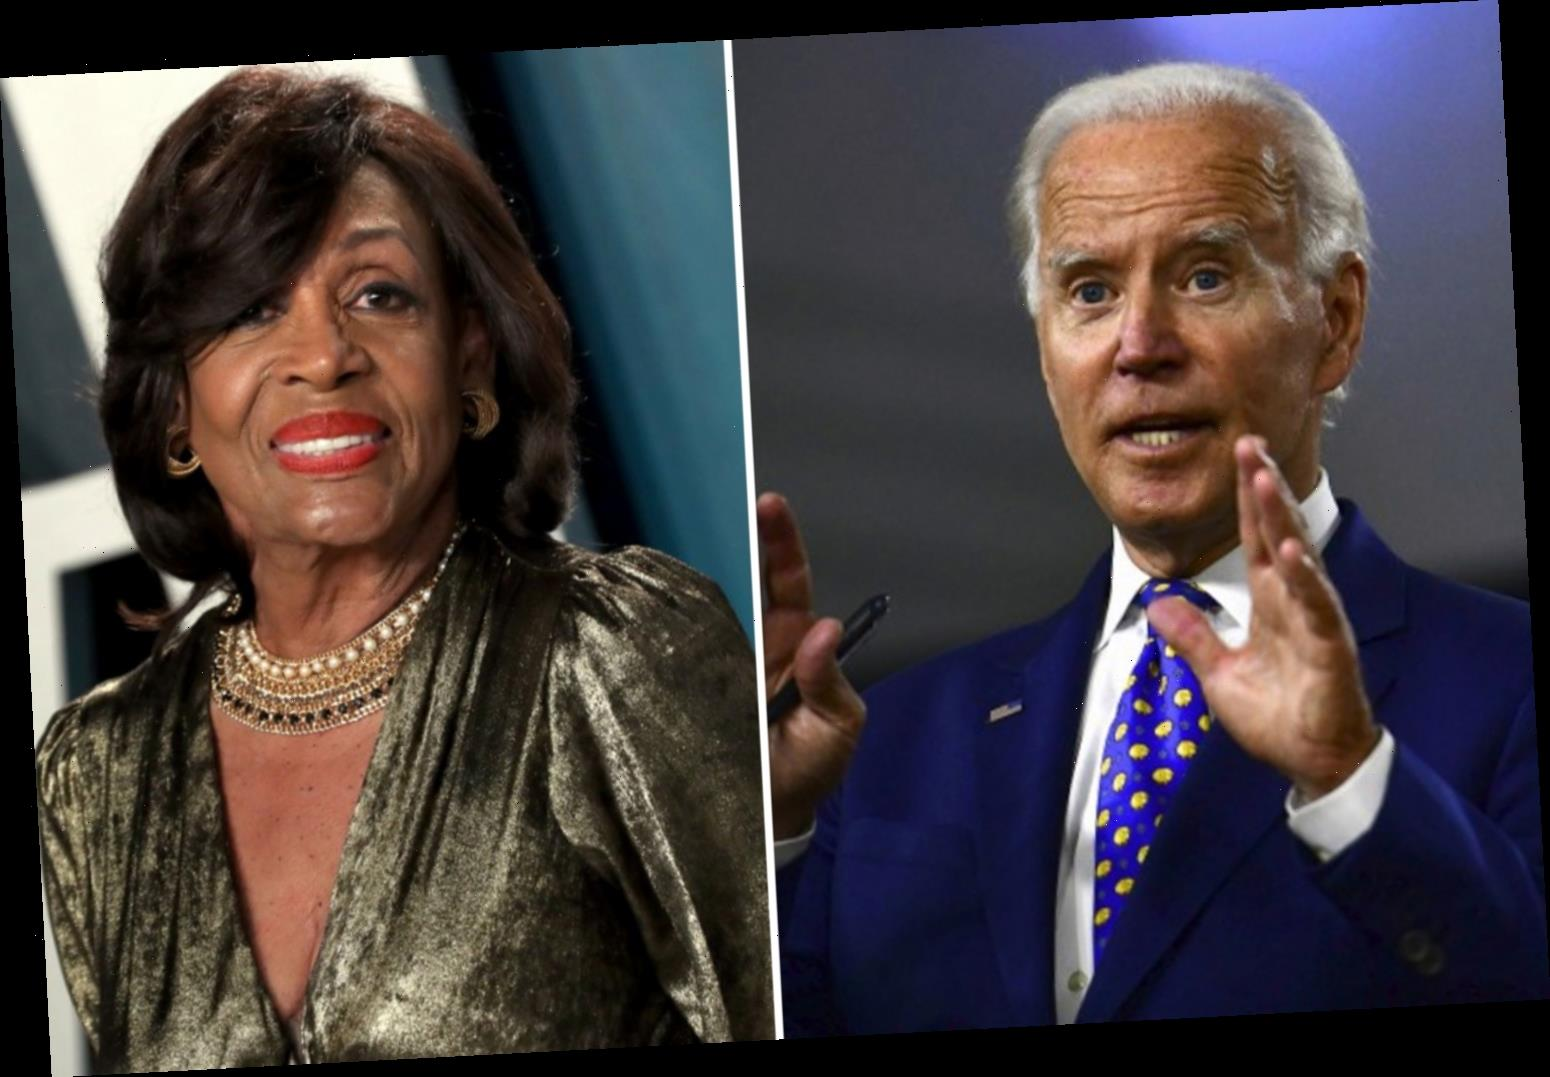 Maxine Waters says Joe Biden 'can't go home' without picking a black woman as his running mate